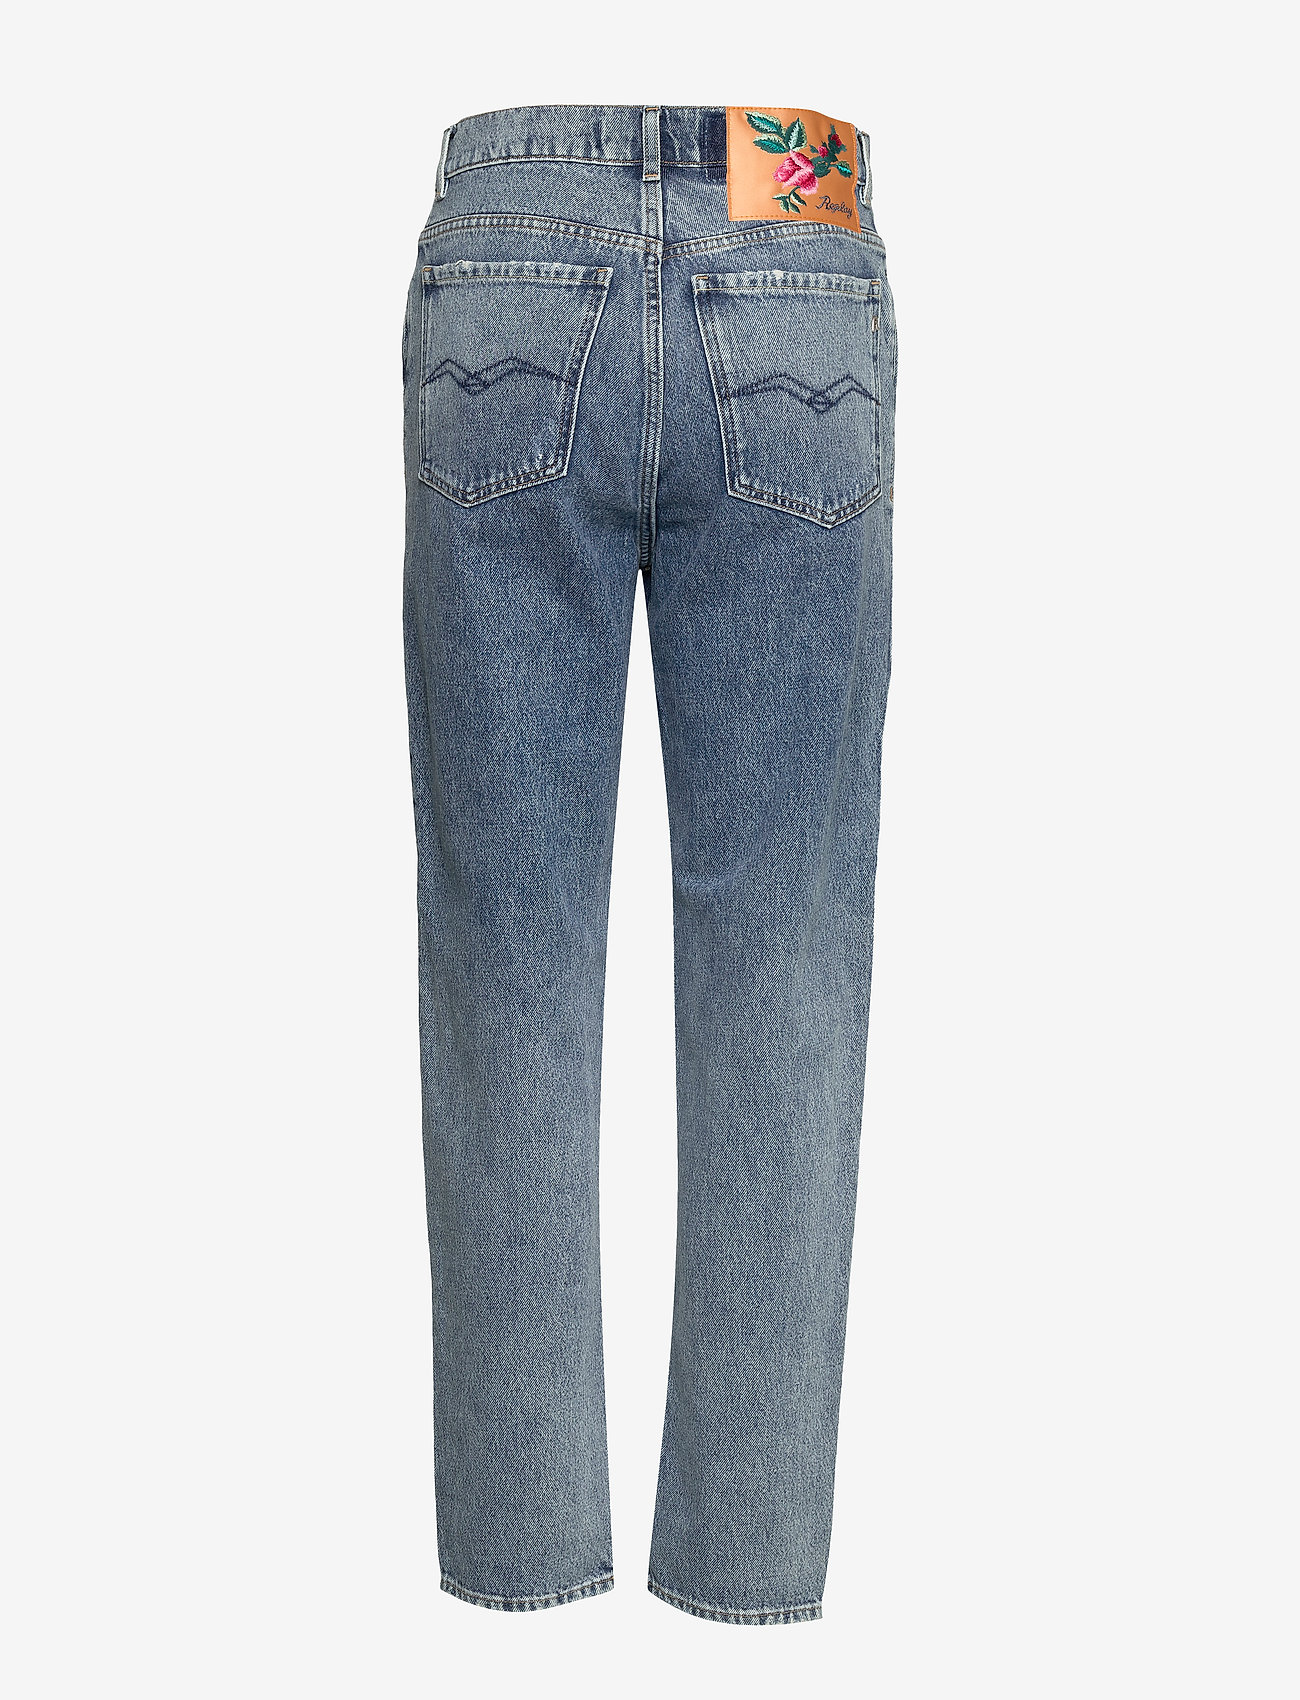 Replay - KILEY - straight jeans - light blue - 1